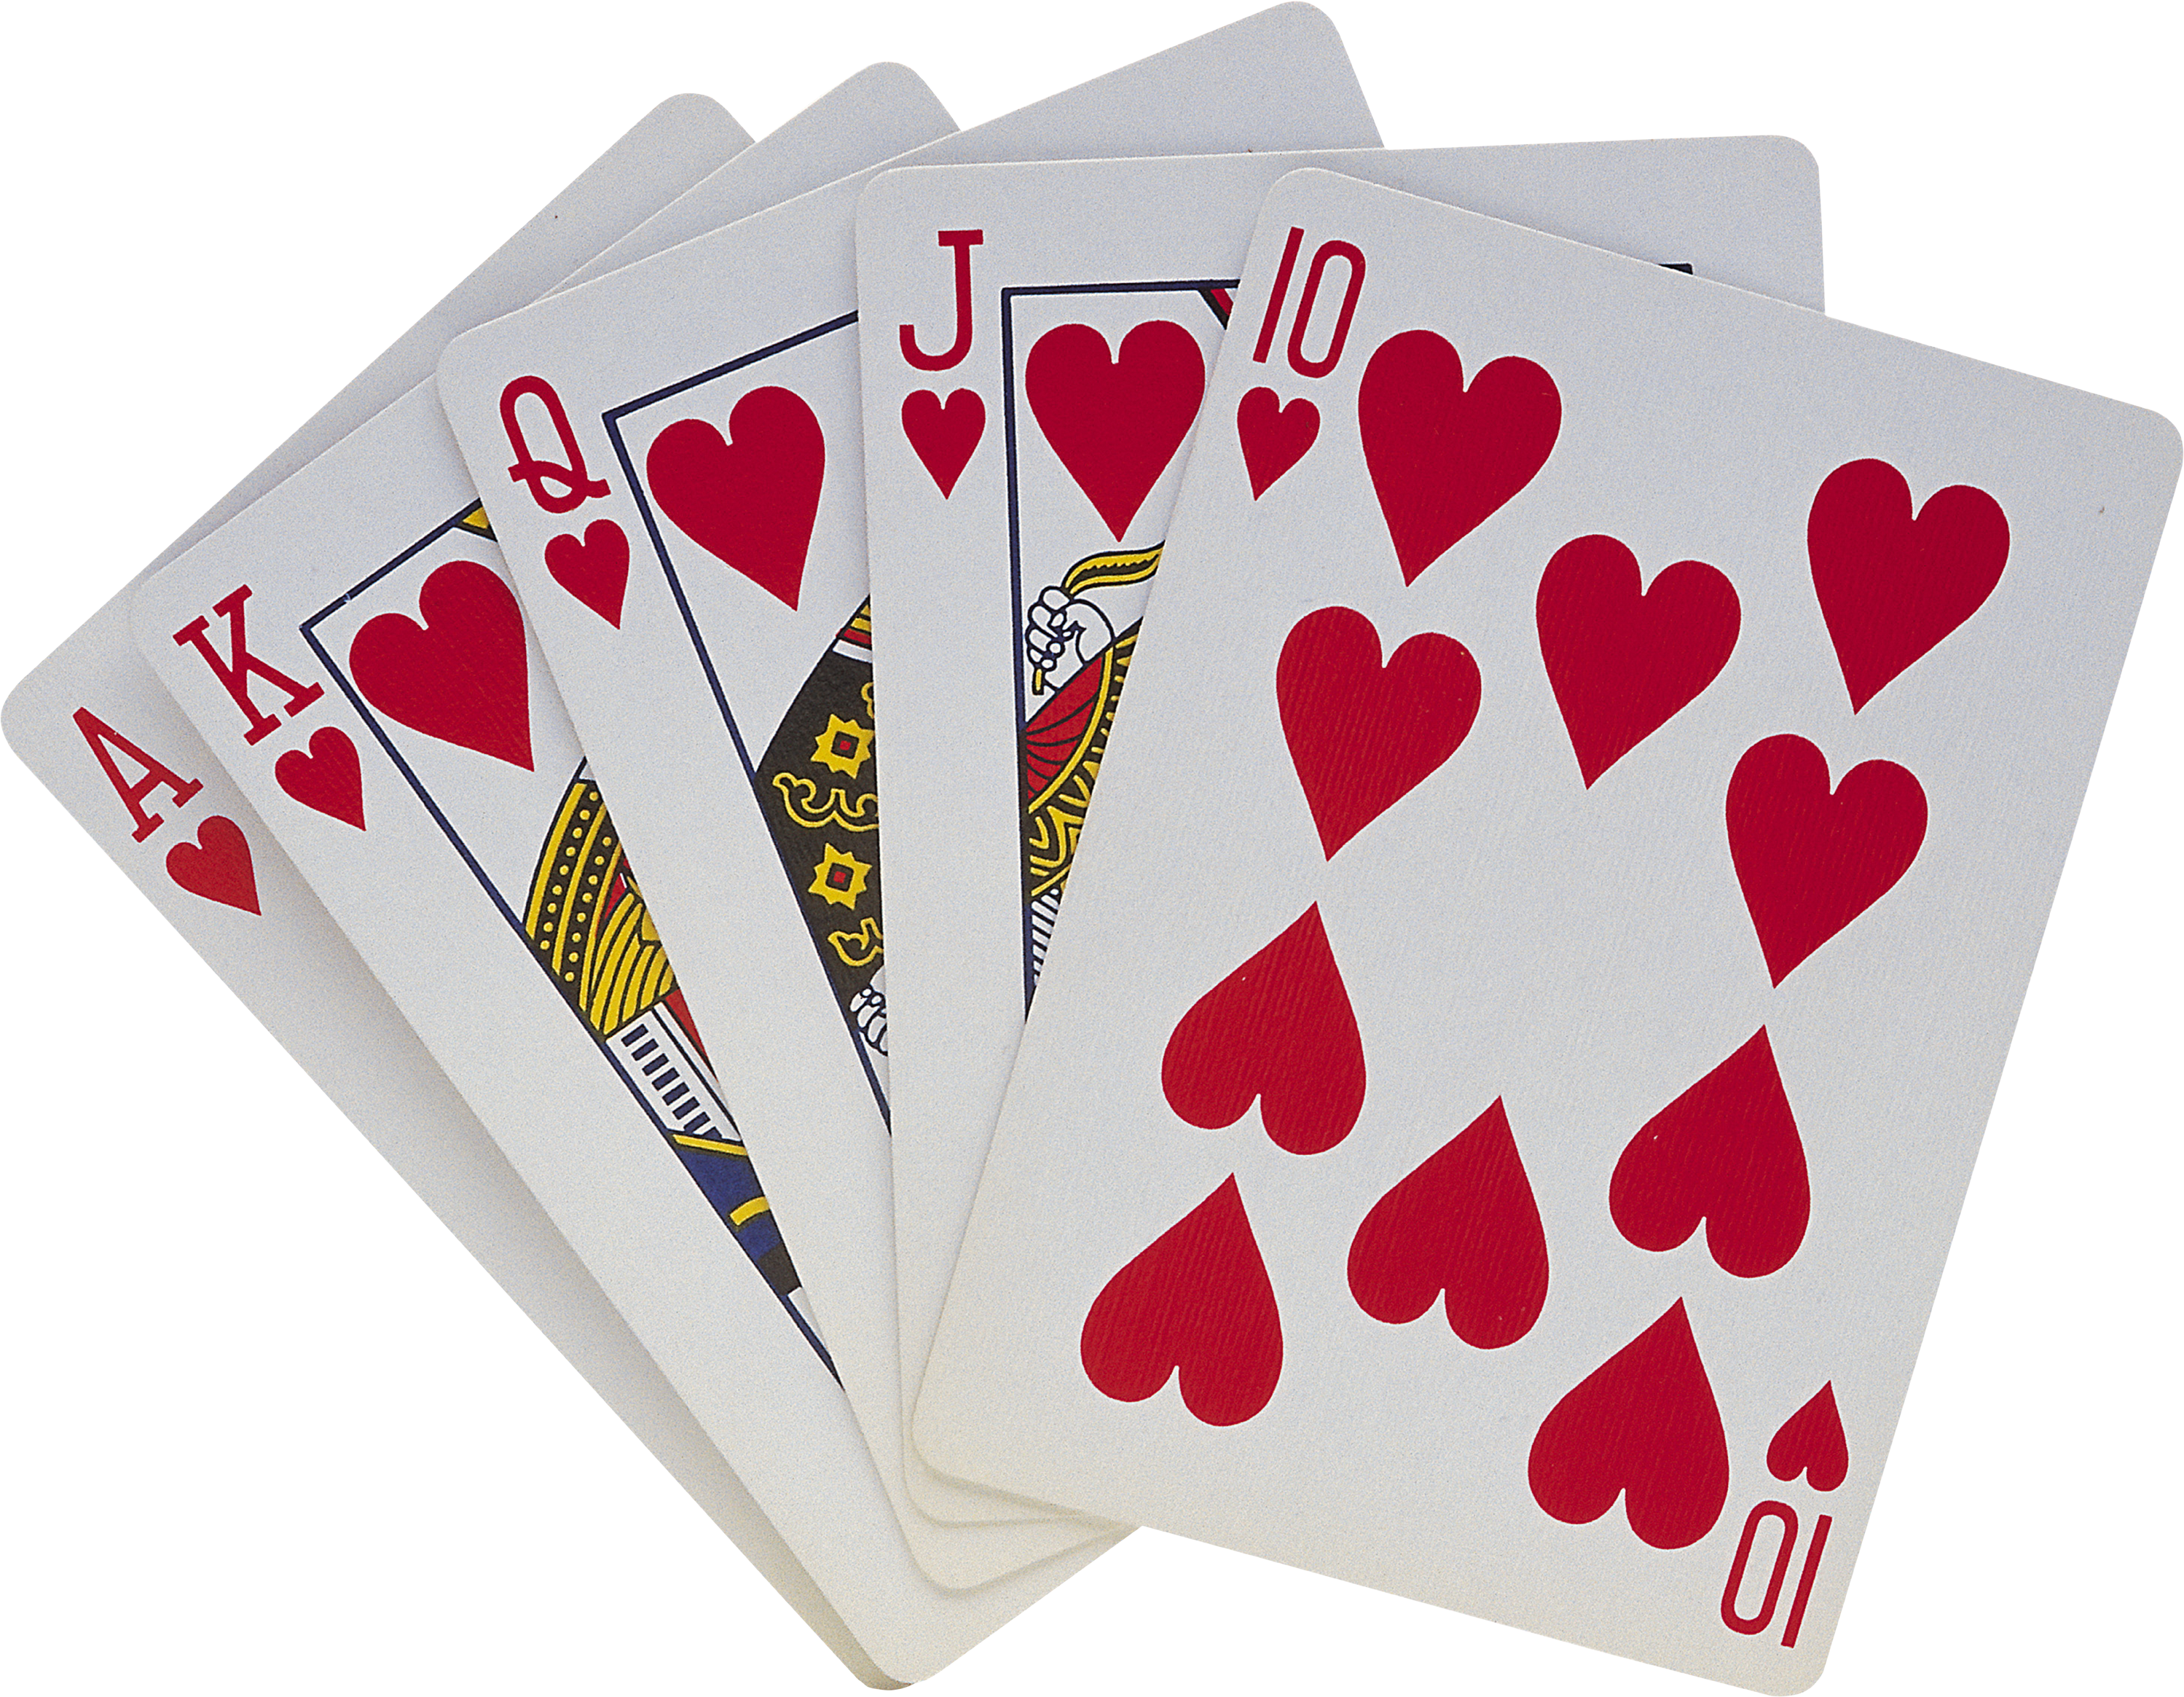 Playing hd transparent images. Cards .png png banner royalty free download